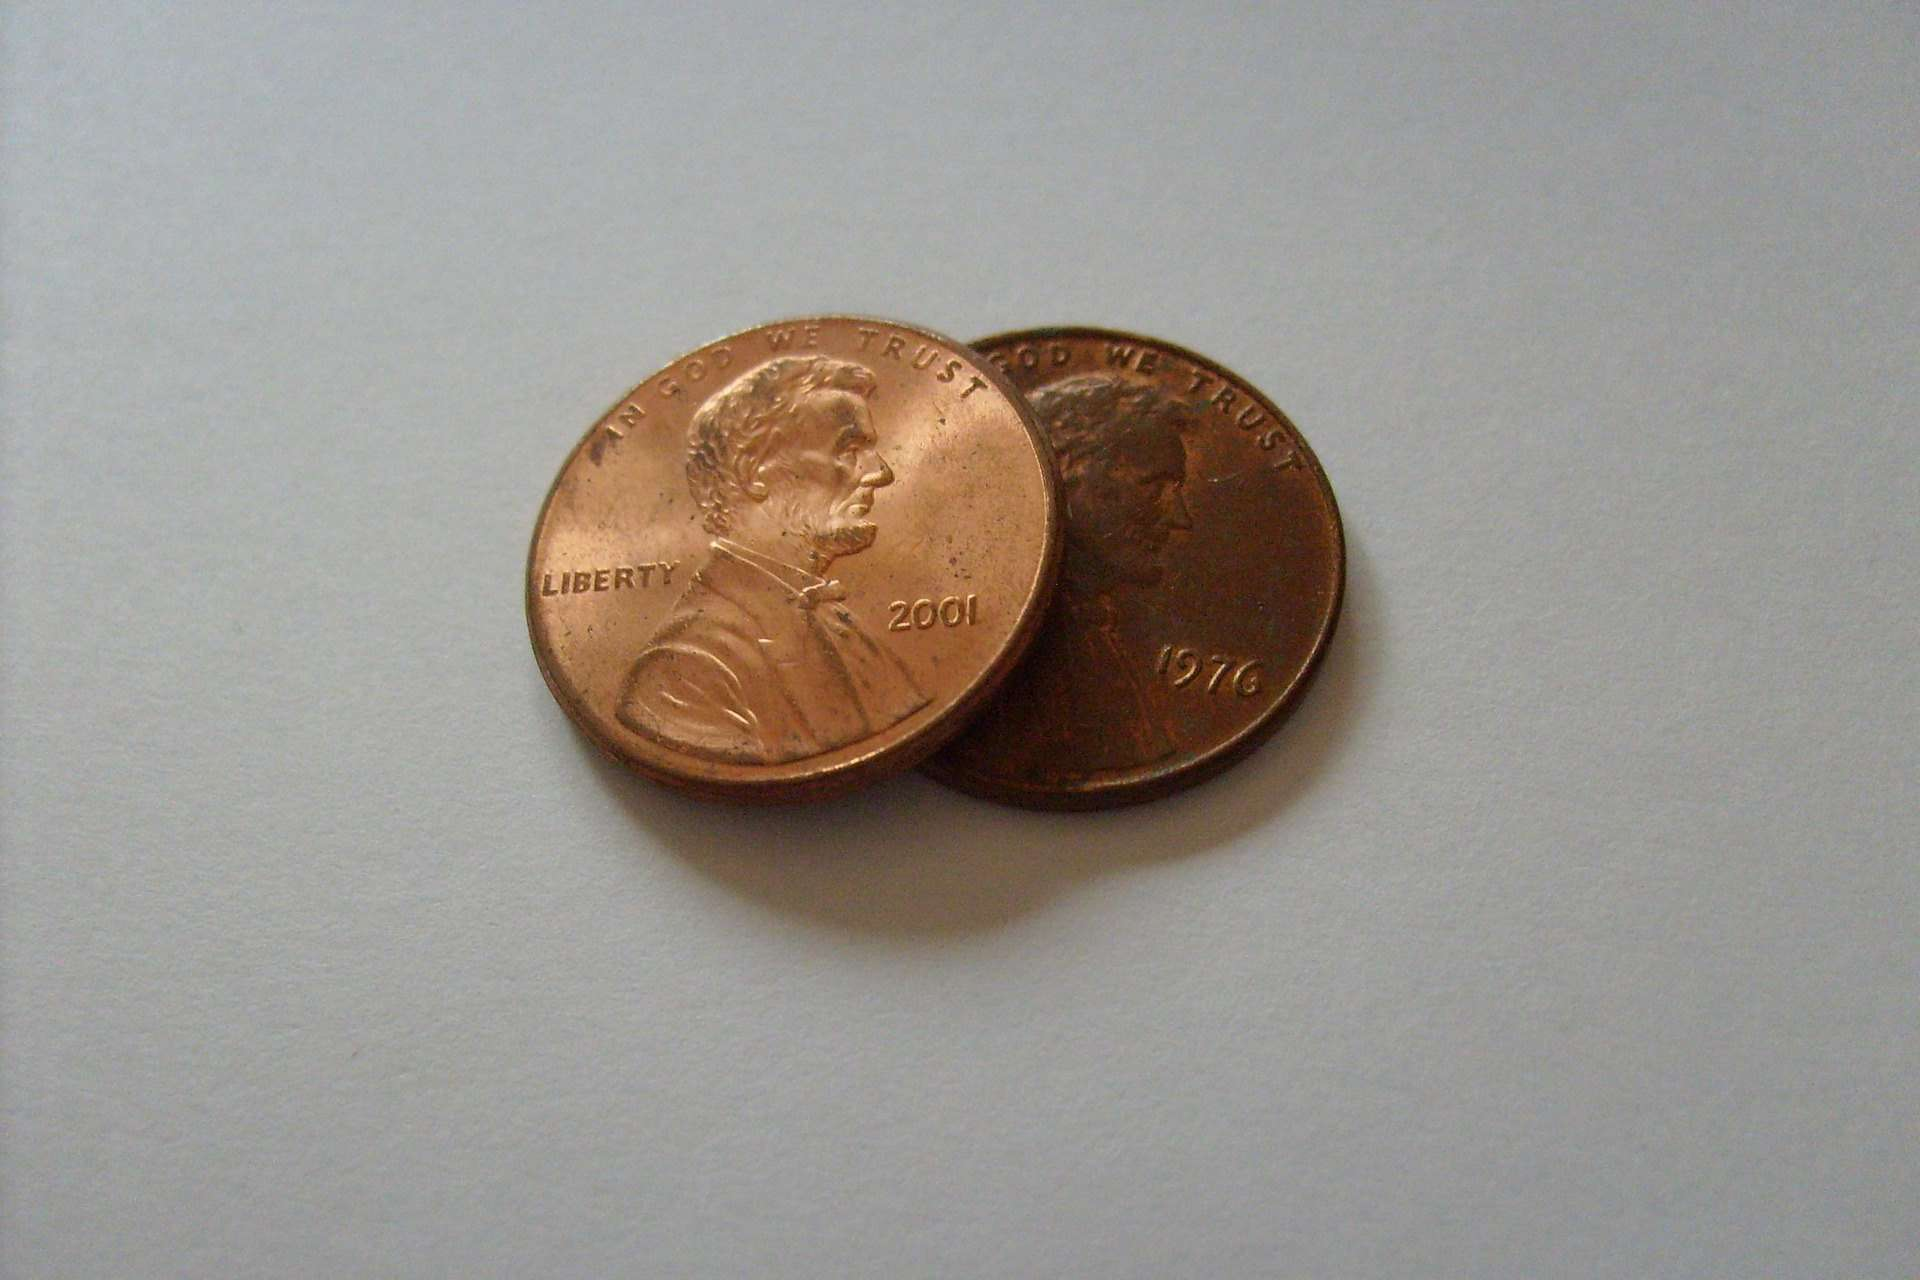 1976 Lincoln Memorial Penny: Copper Penny Hoarding Increases Scarcity